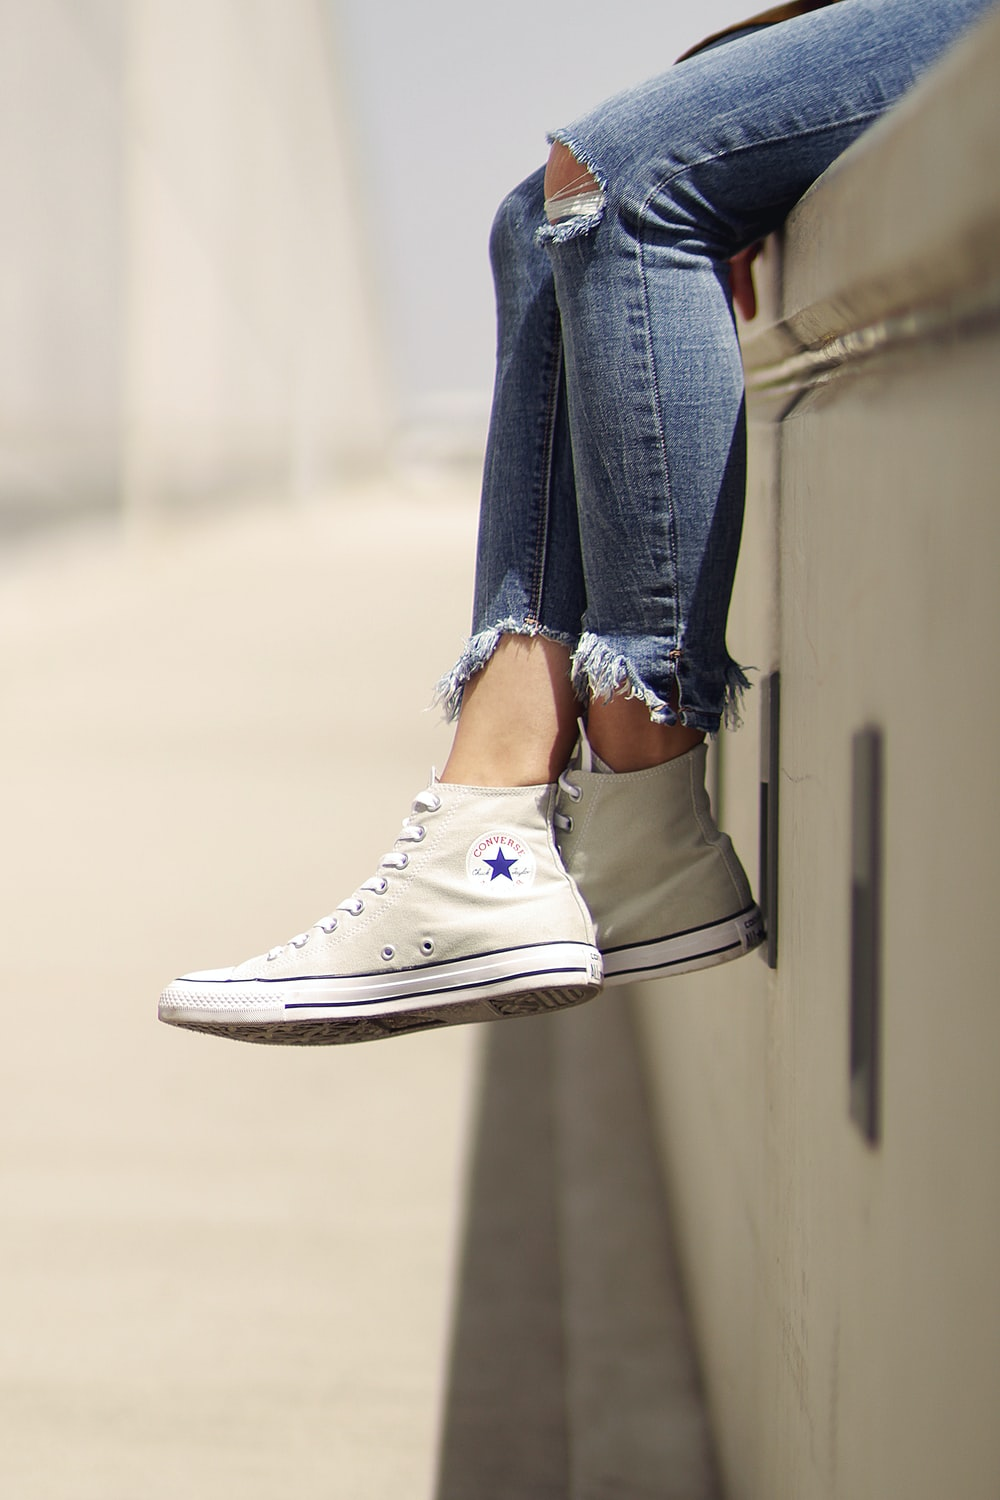 woman wearing white Converse low-top sneakers